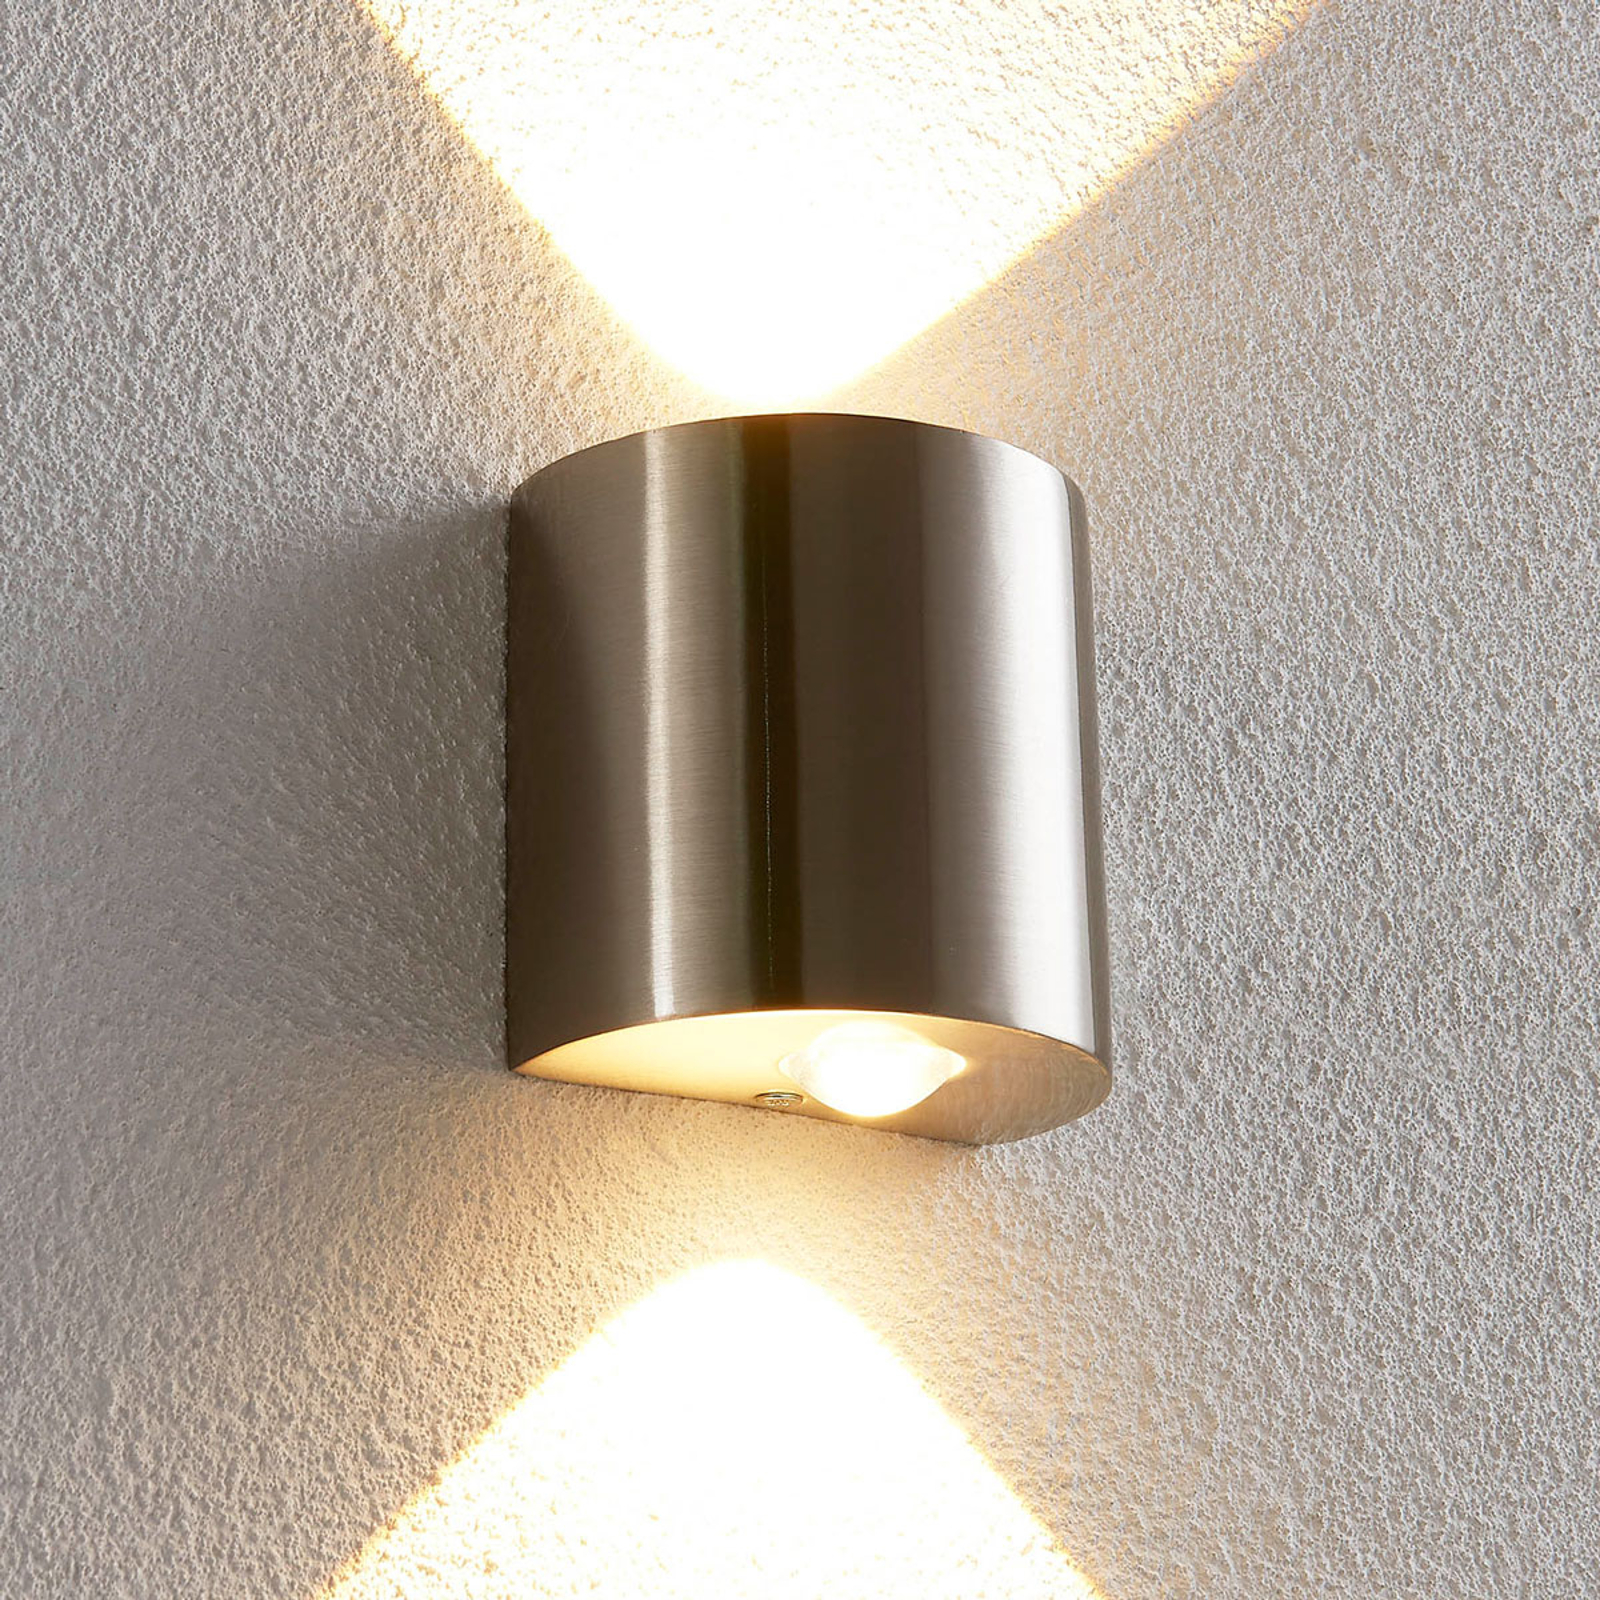 Halfronde LED wandlamp Lareen, in mat nikkel